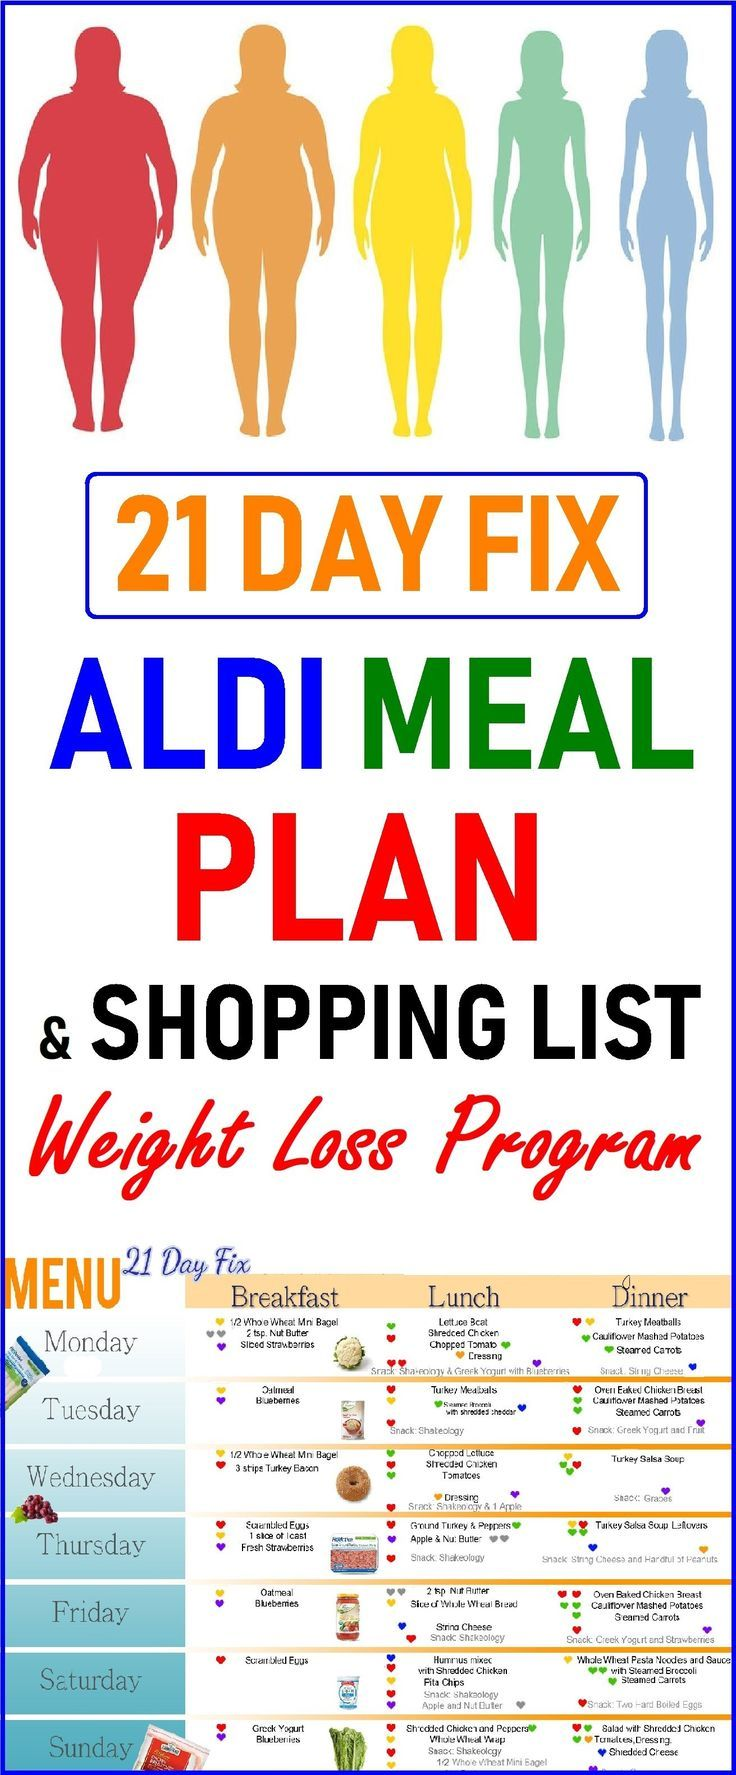 21 Day Fix ALDI Meal Plan and Shopping List  Weight Loss Program  Food